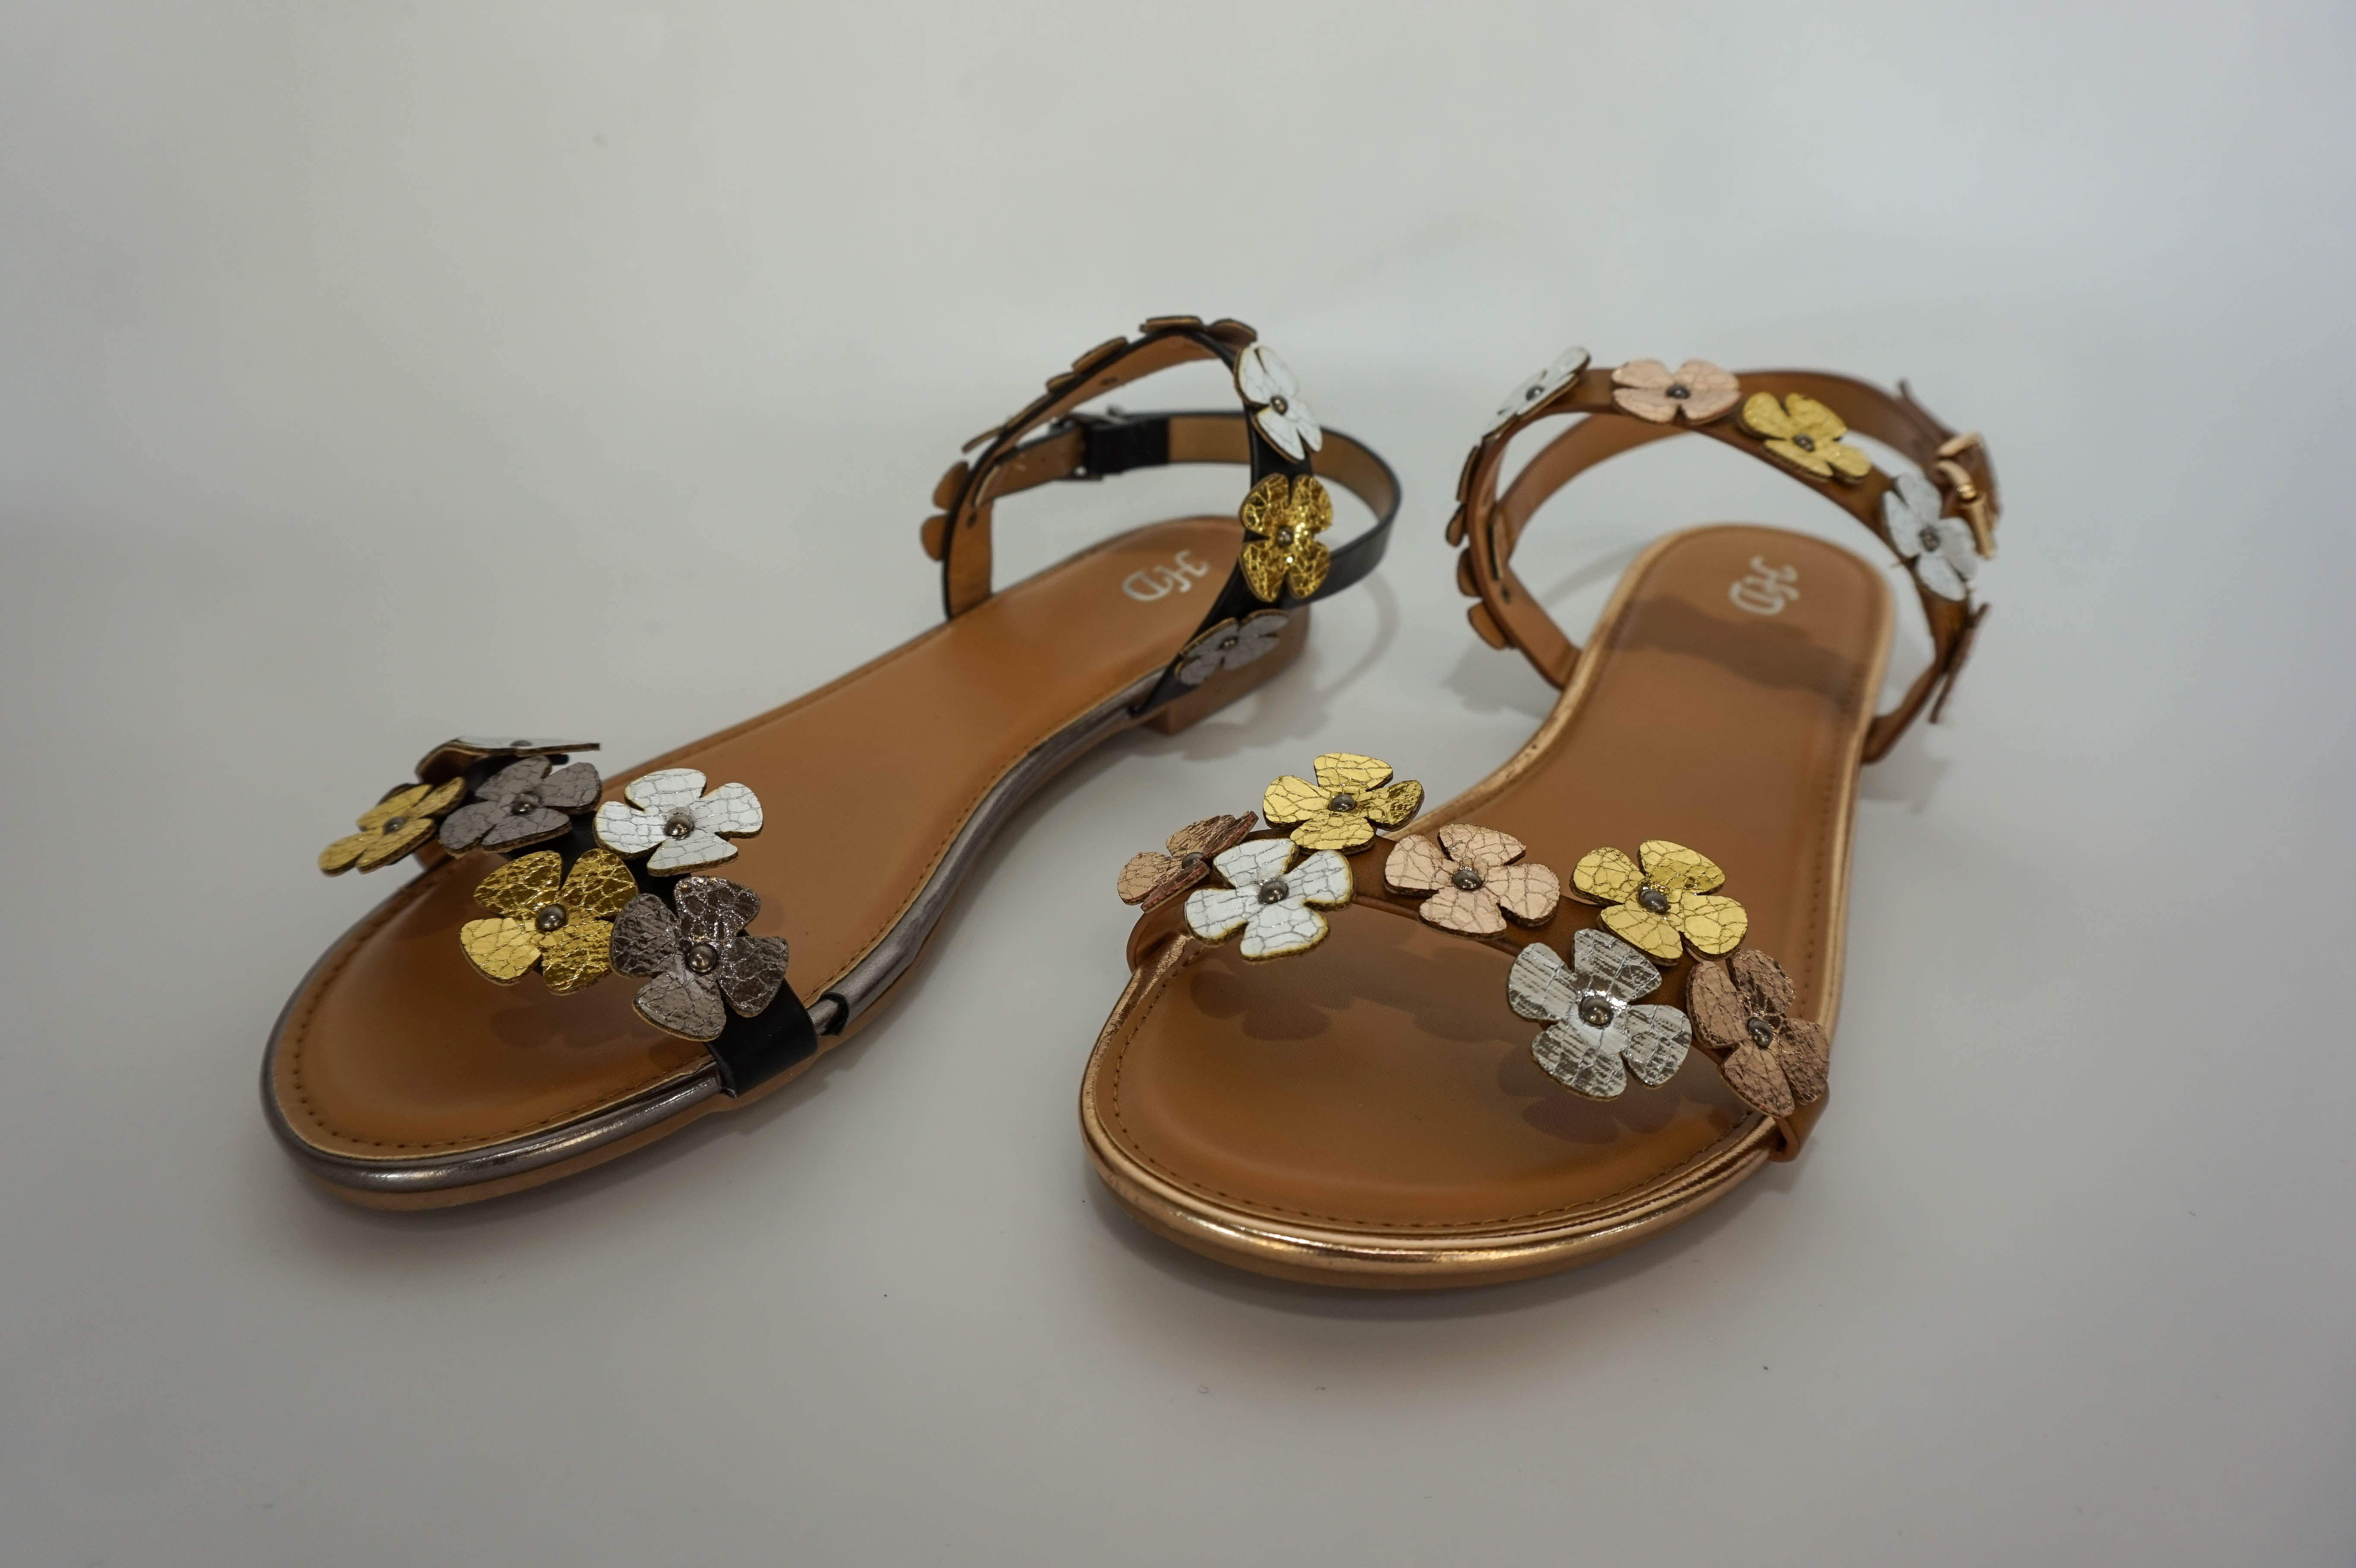 A contemporary selection of comfortable sandals by Hunky Dory exclusive to Rhumba. From strappy flats to dressy wedges in metallics, textured fabrics or bold solid colours with simple or detailed embellishments.